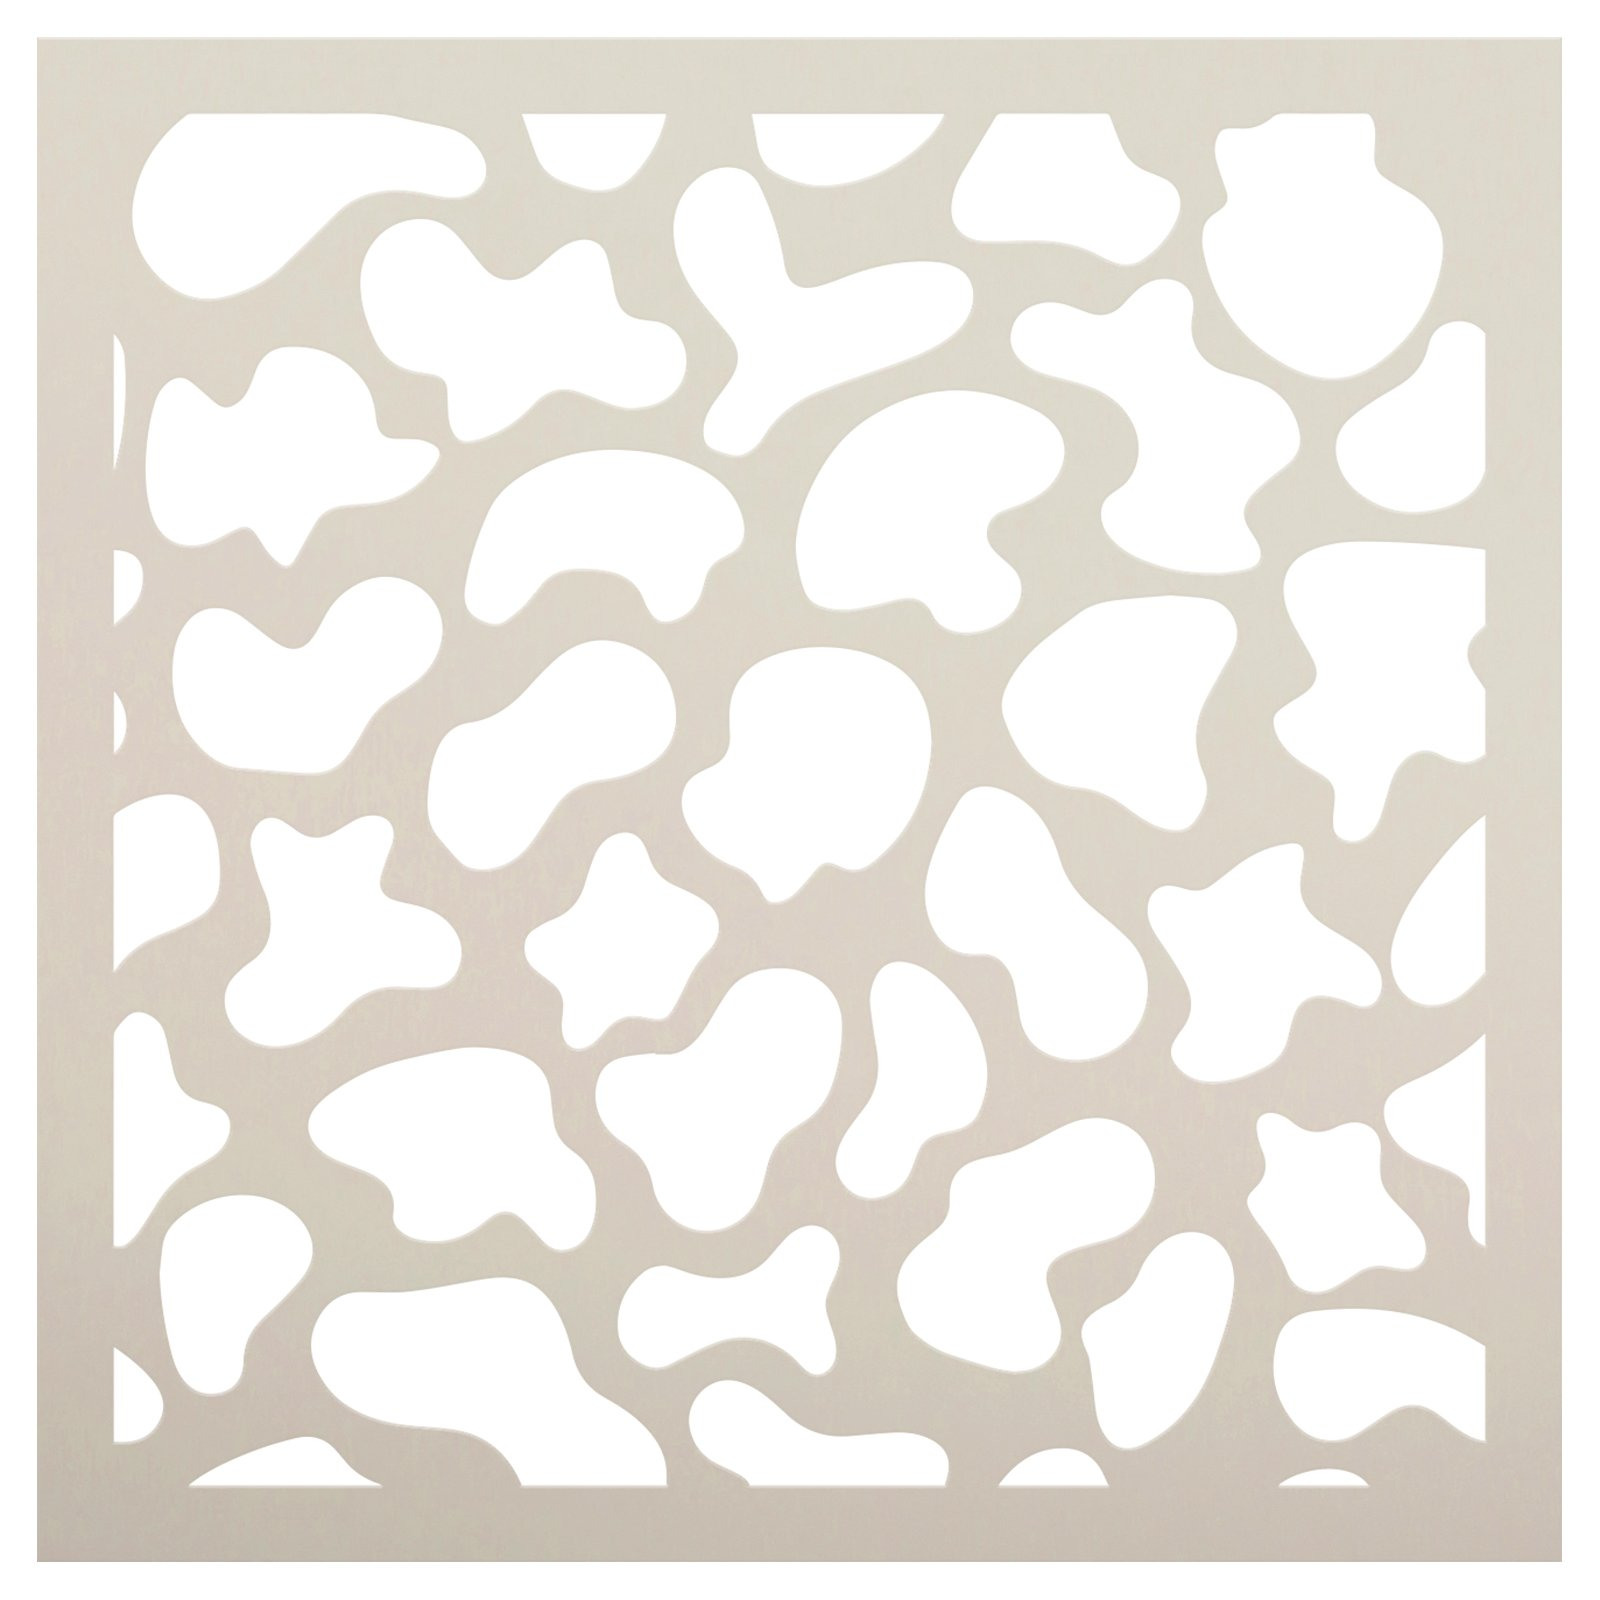 Cow Pattern Stencil by StudioR12 | Craft DIY Pattern Home Decor | Paint Decorative Wood Sign | Reusable Mylar Template | Select Size